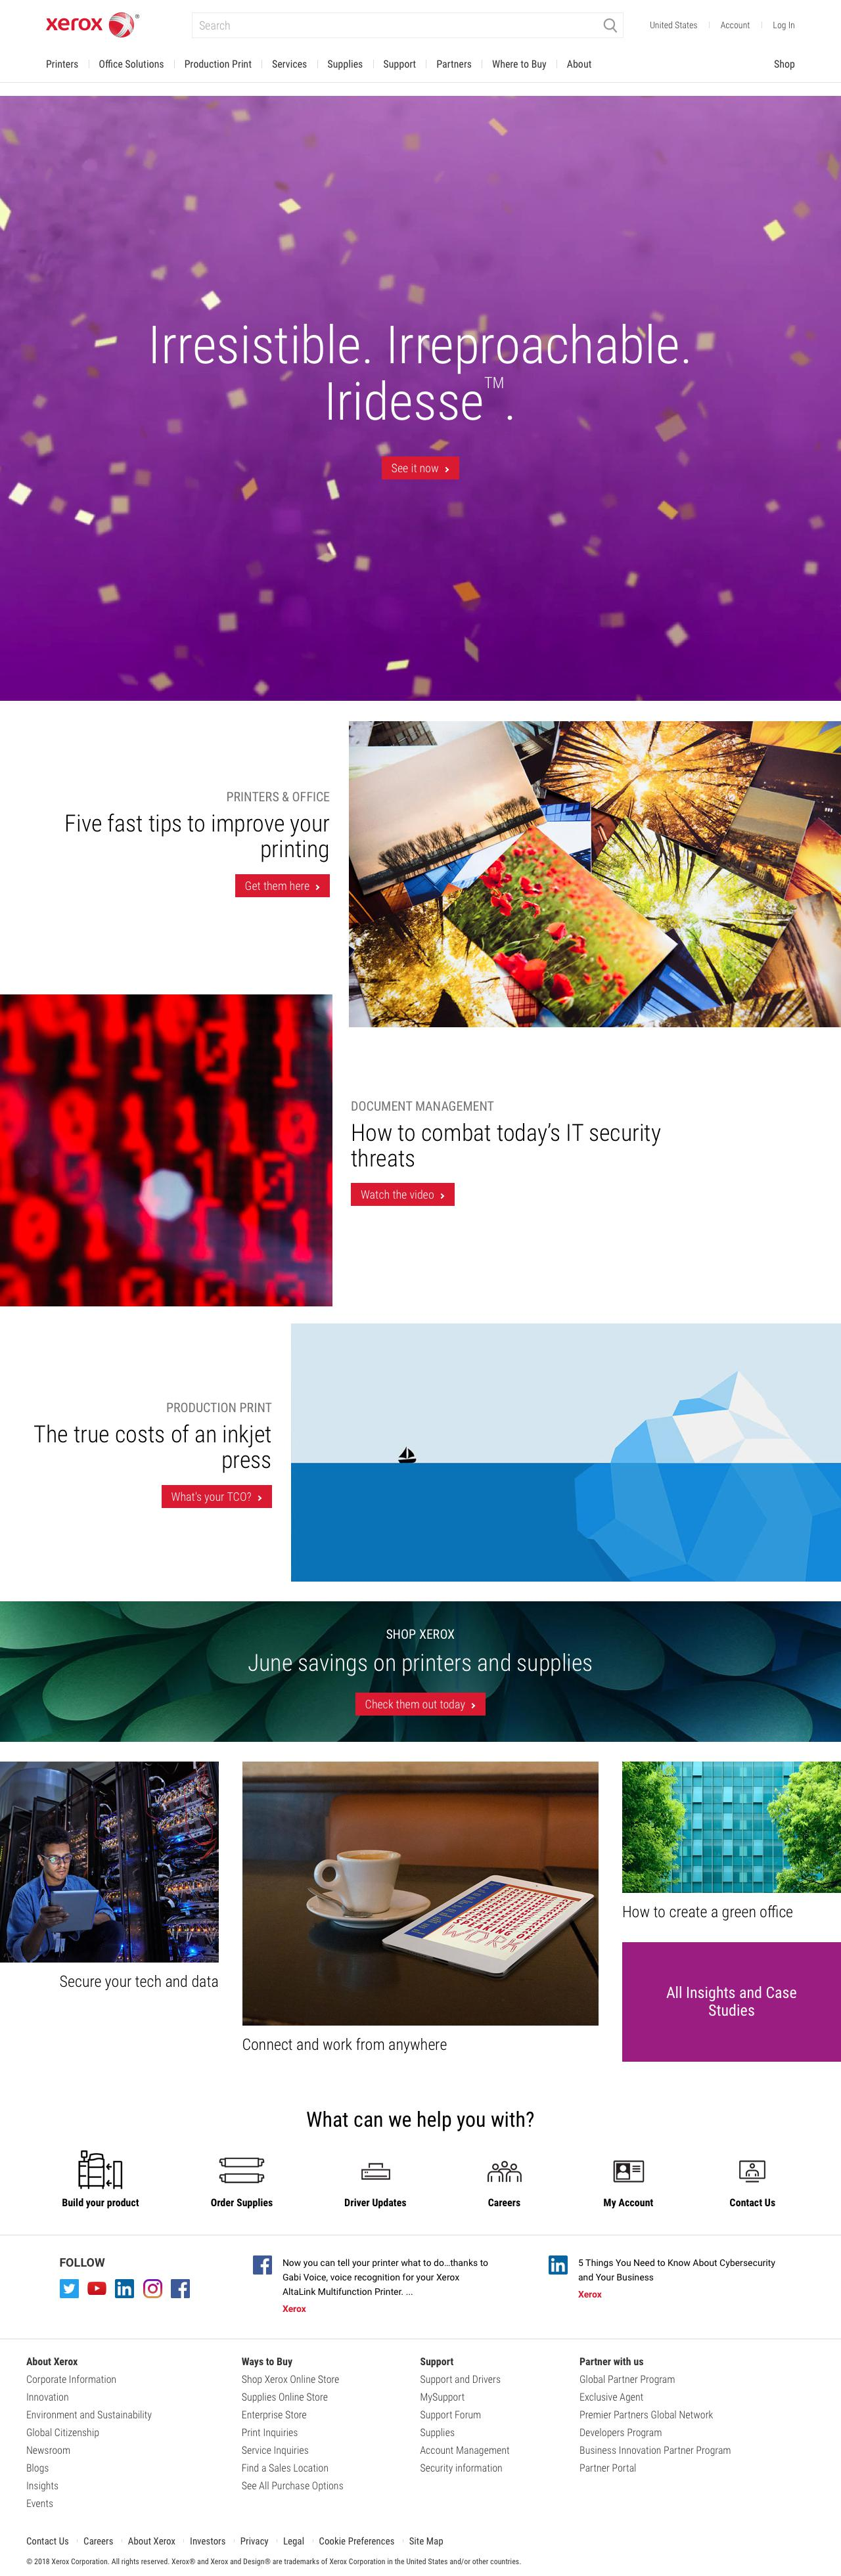 Screenshot of xerox.com - Business Services and Digital Printing Solutions – Xerox - captured June 4, 2018